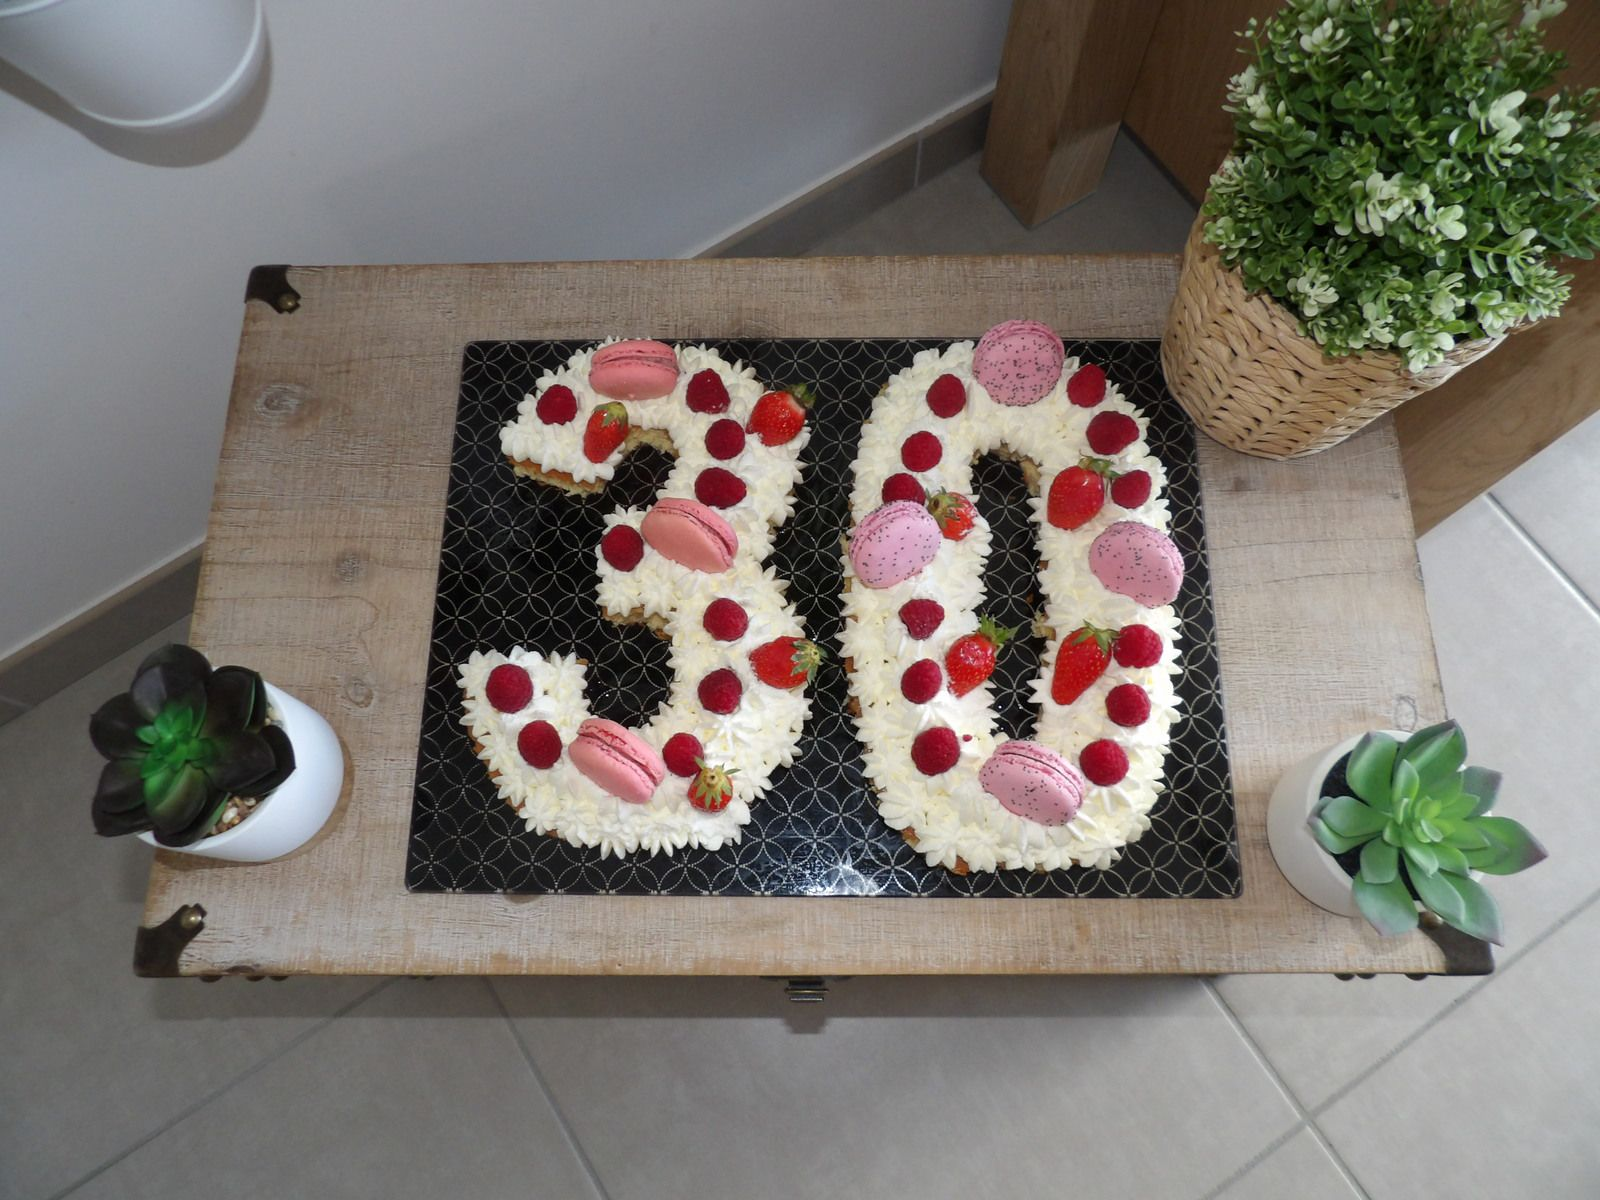 number cake, recette facile, framboises, macarons